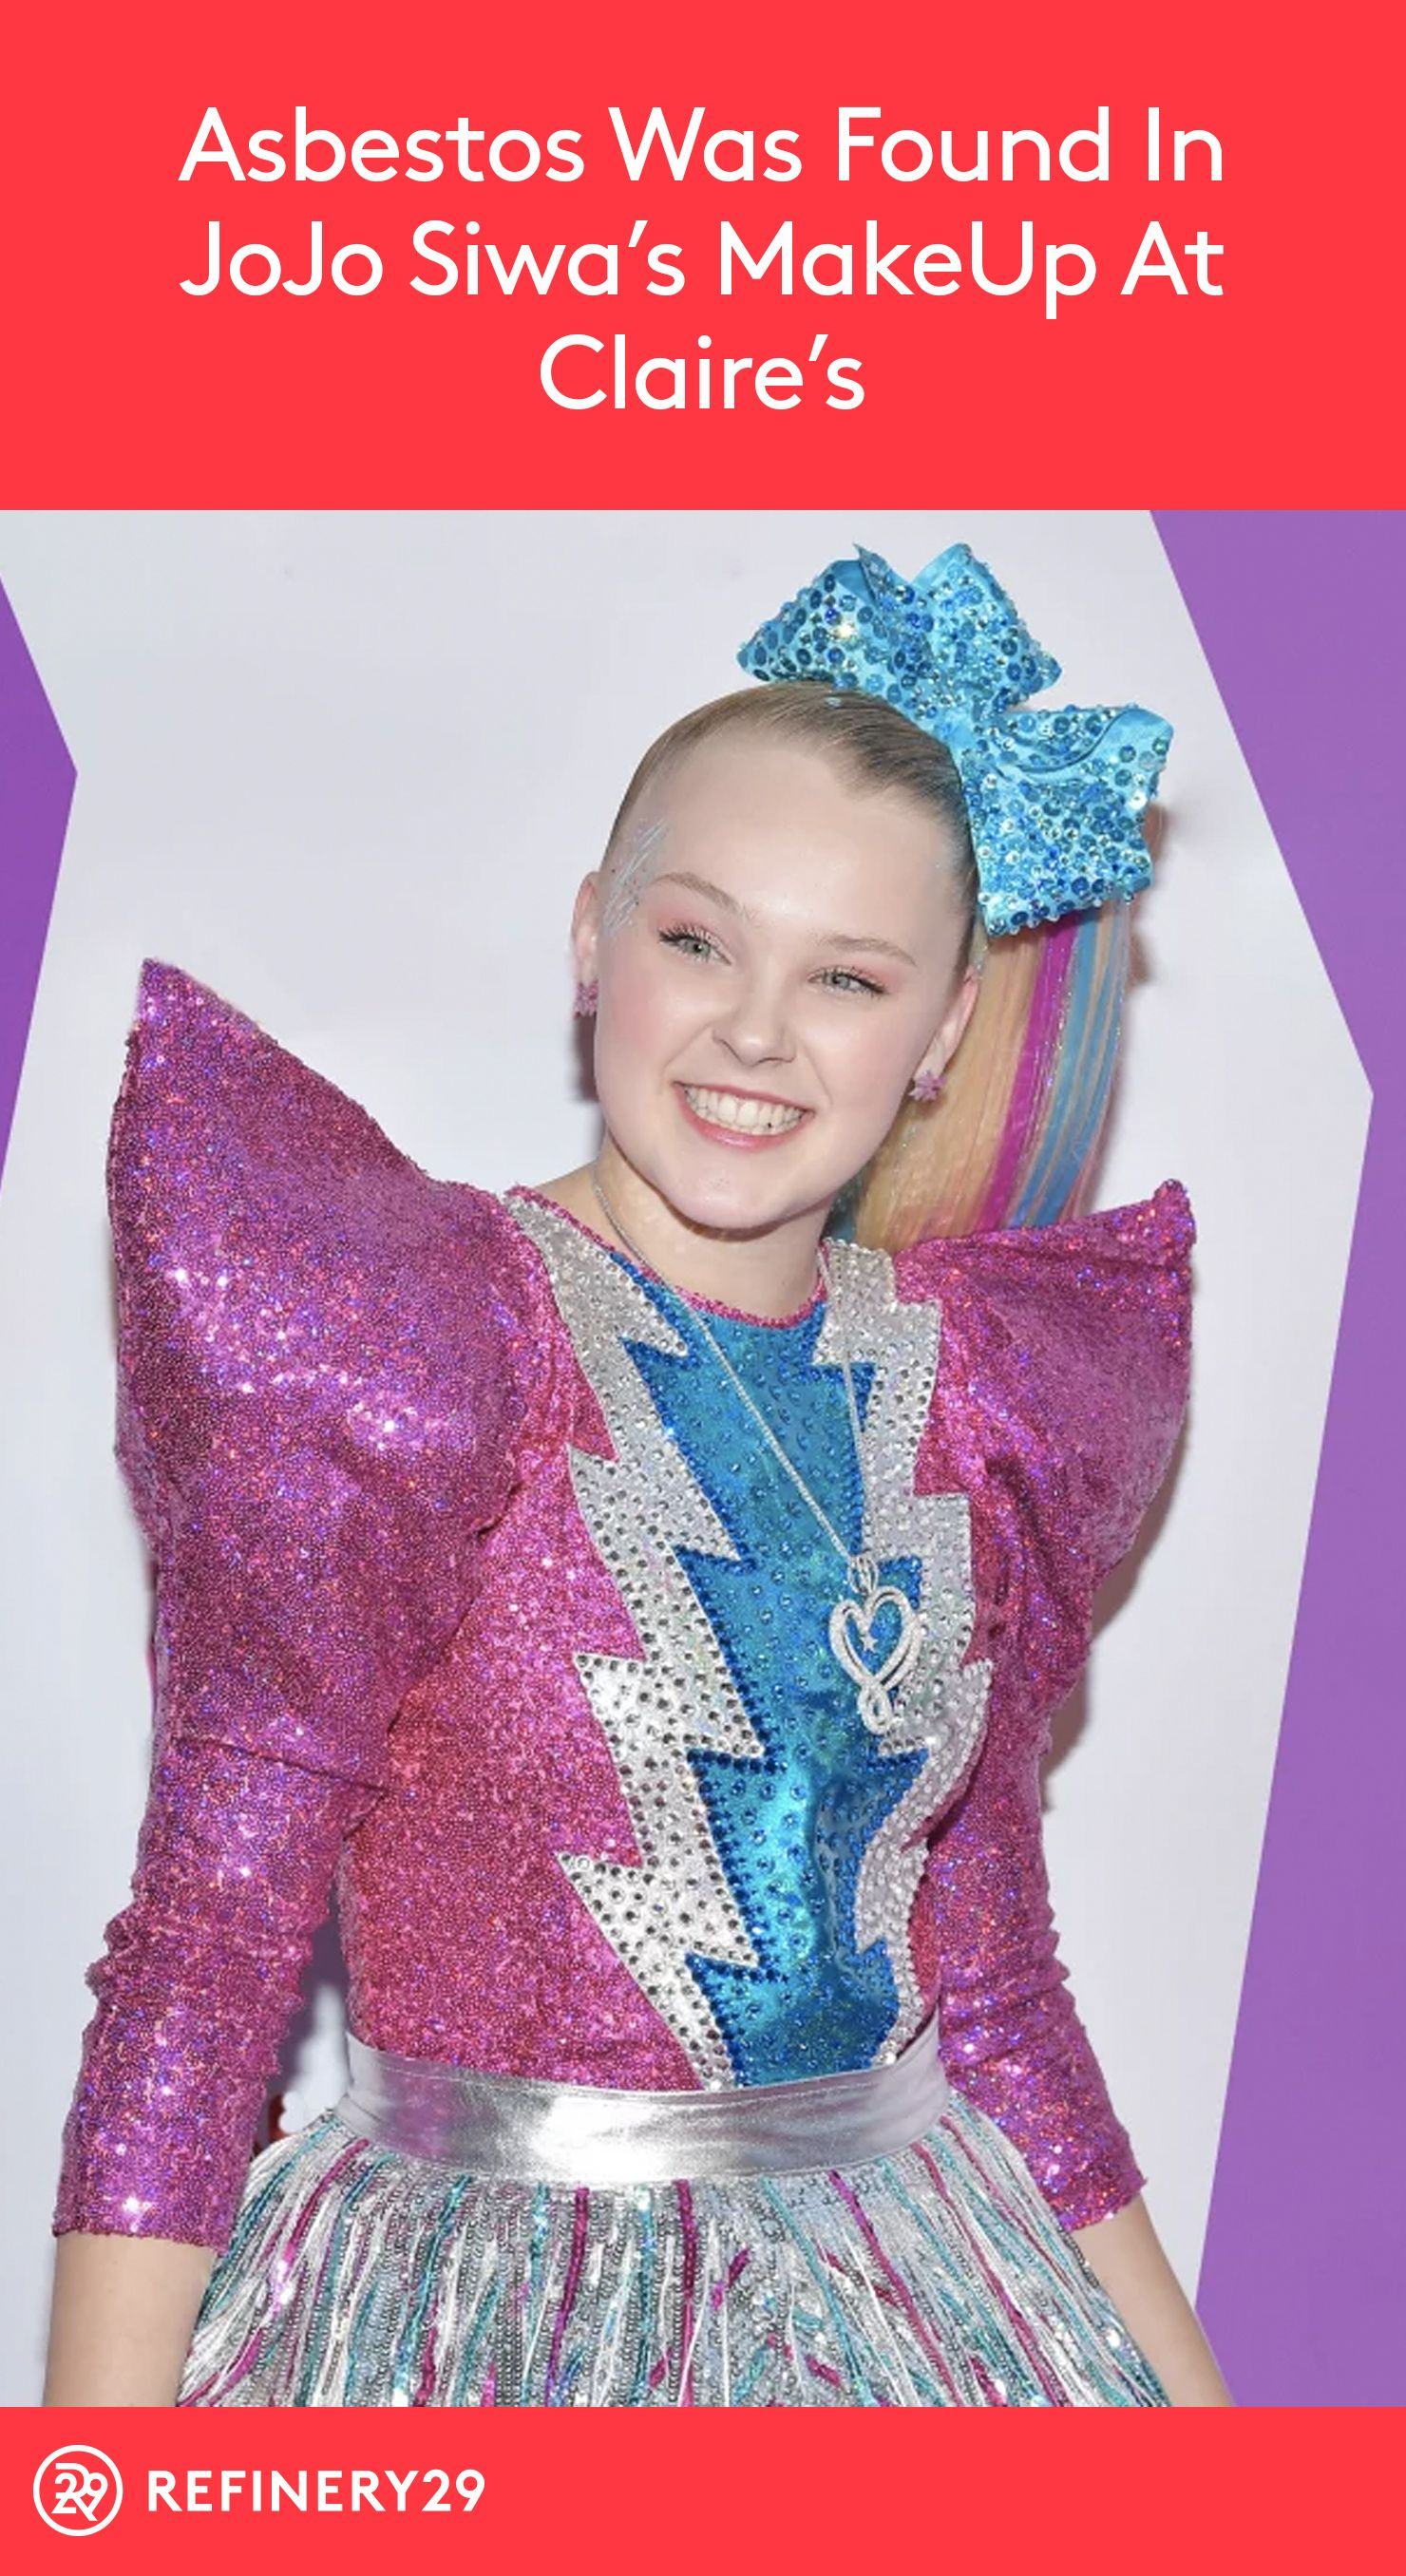 JoJo Siwa's Makeup Kit At Claire's Was Recalled For Having